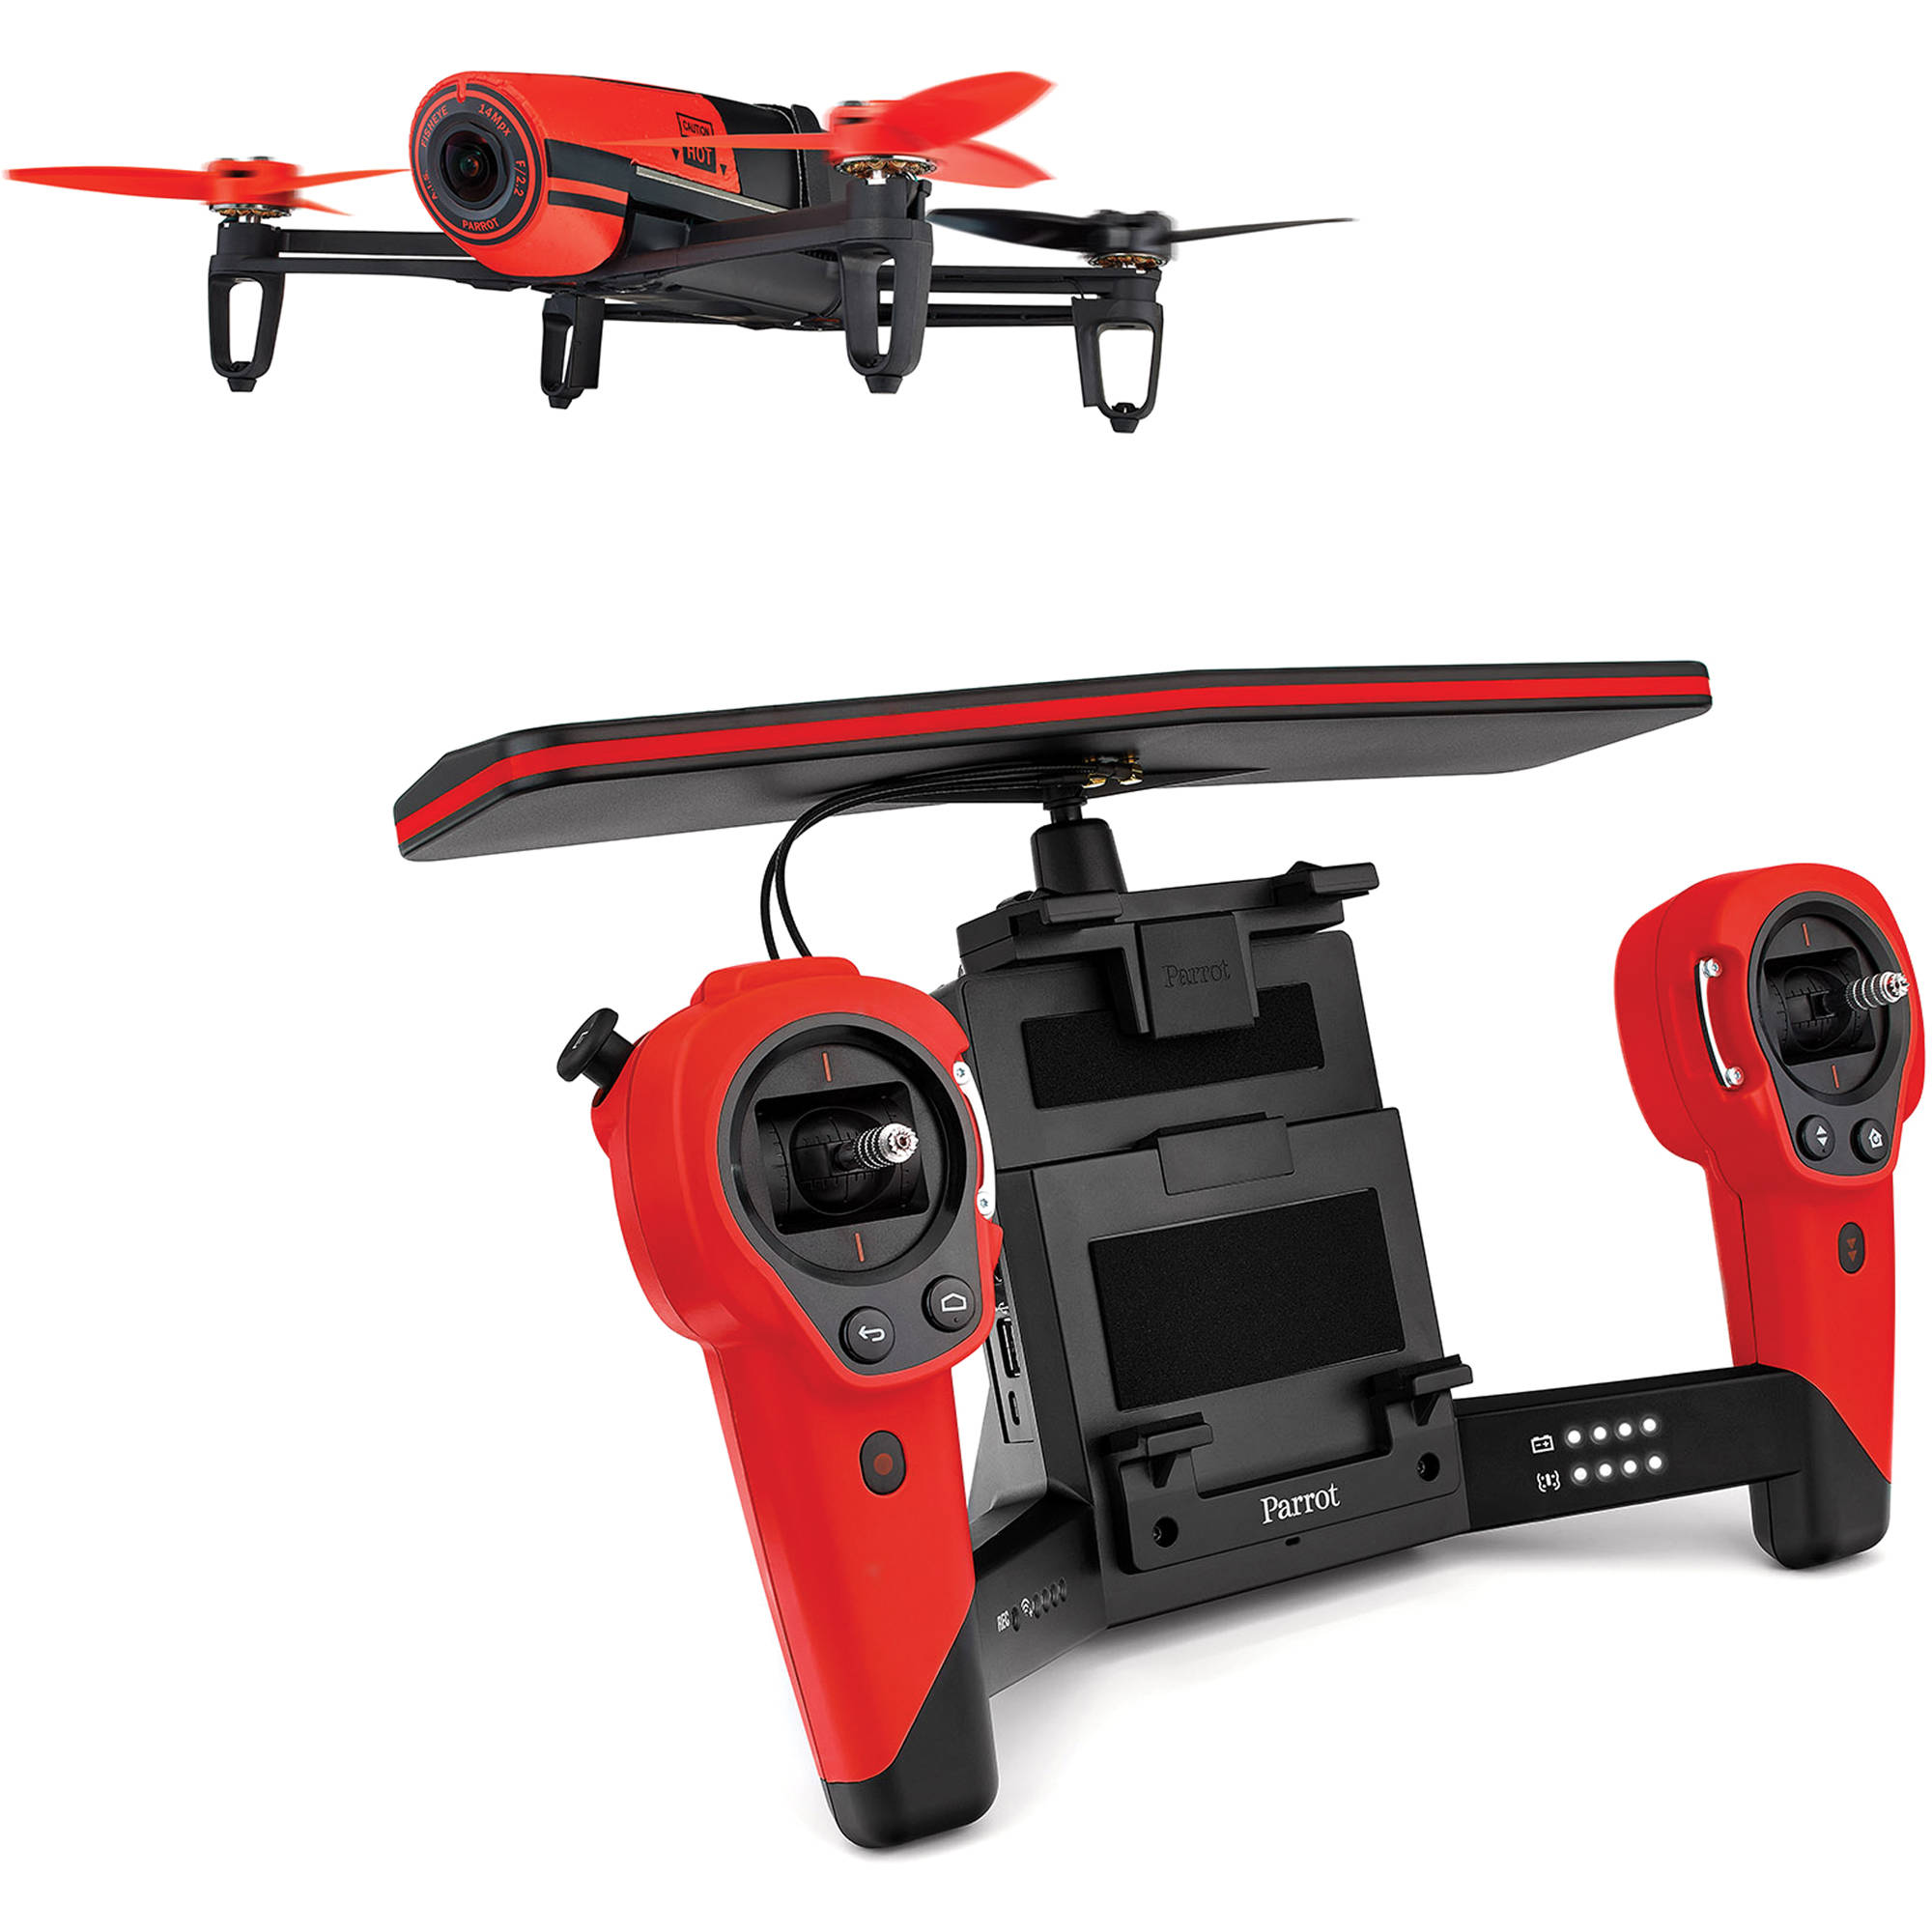 bebop parrot drone with Parrot Pf725100 Bebop Drone Sky Controller Bundle Red on 130458 together with Parrot Bebop 2 Fpv Skycontroller 2 moreover Test likewise 331999 test Drone Parrot Bebop 2 Brin De Deception furthermore Parrots Disco Drone Takes To The Air As A Fixed Wing Ultralight.